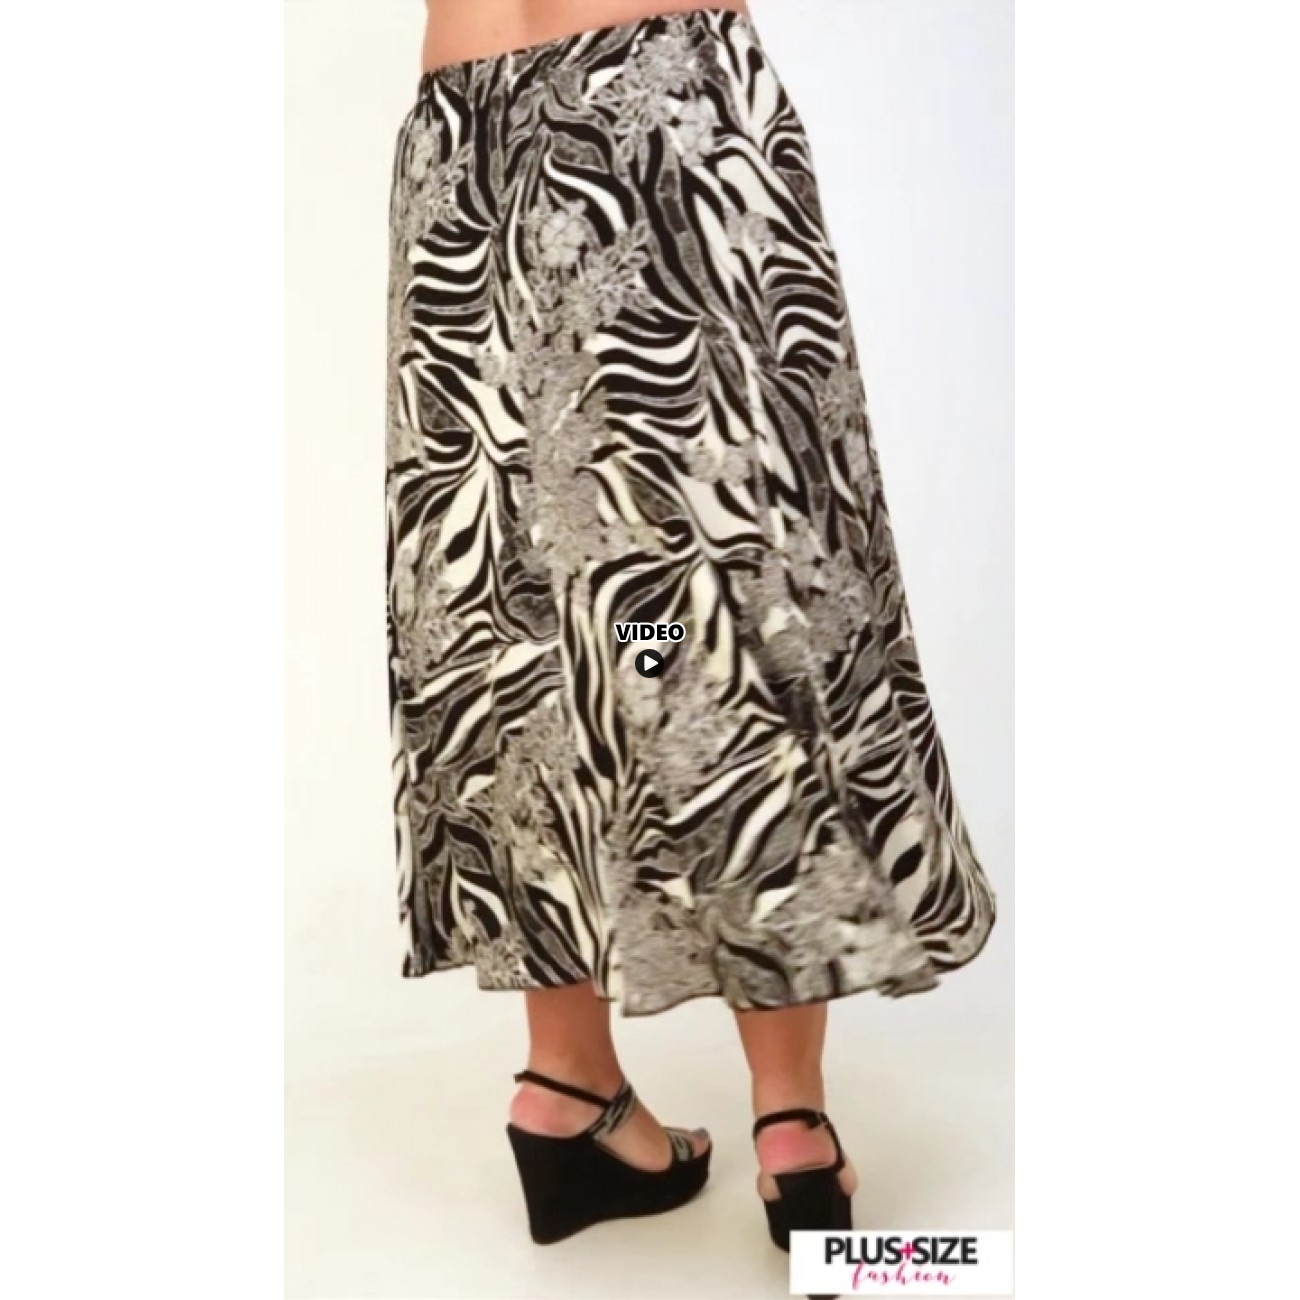 A21-6060 Jersey Closh Skirt with elastic band